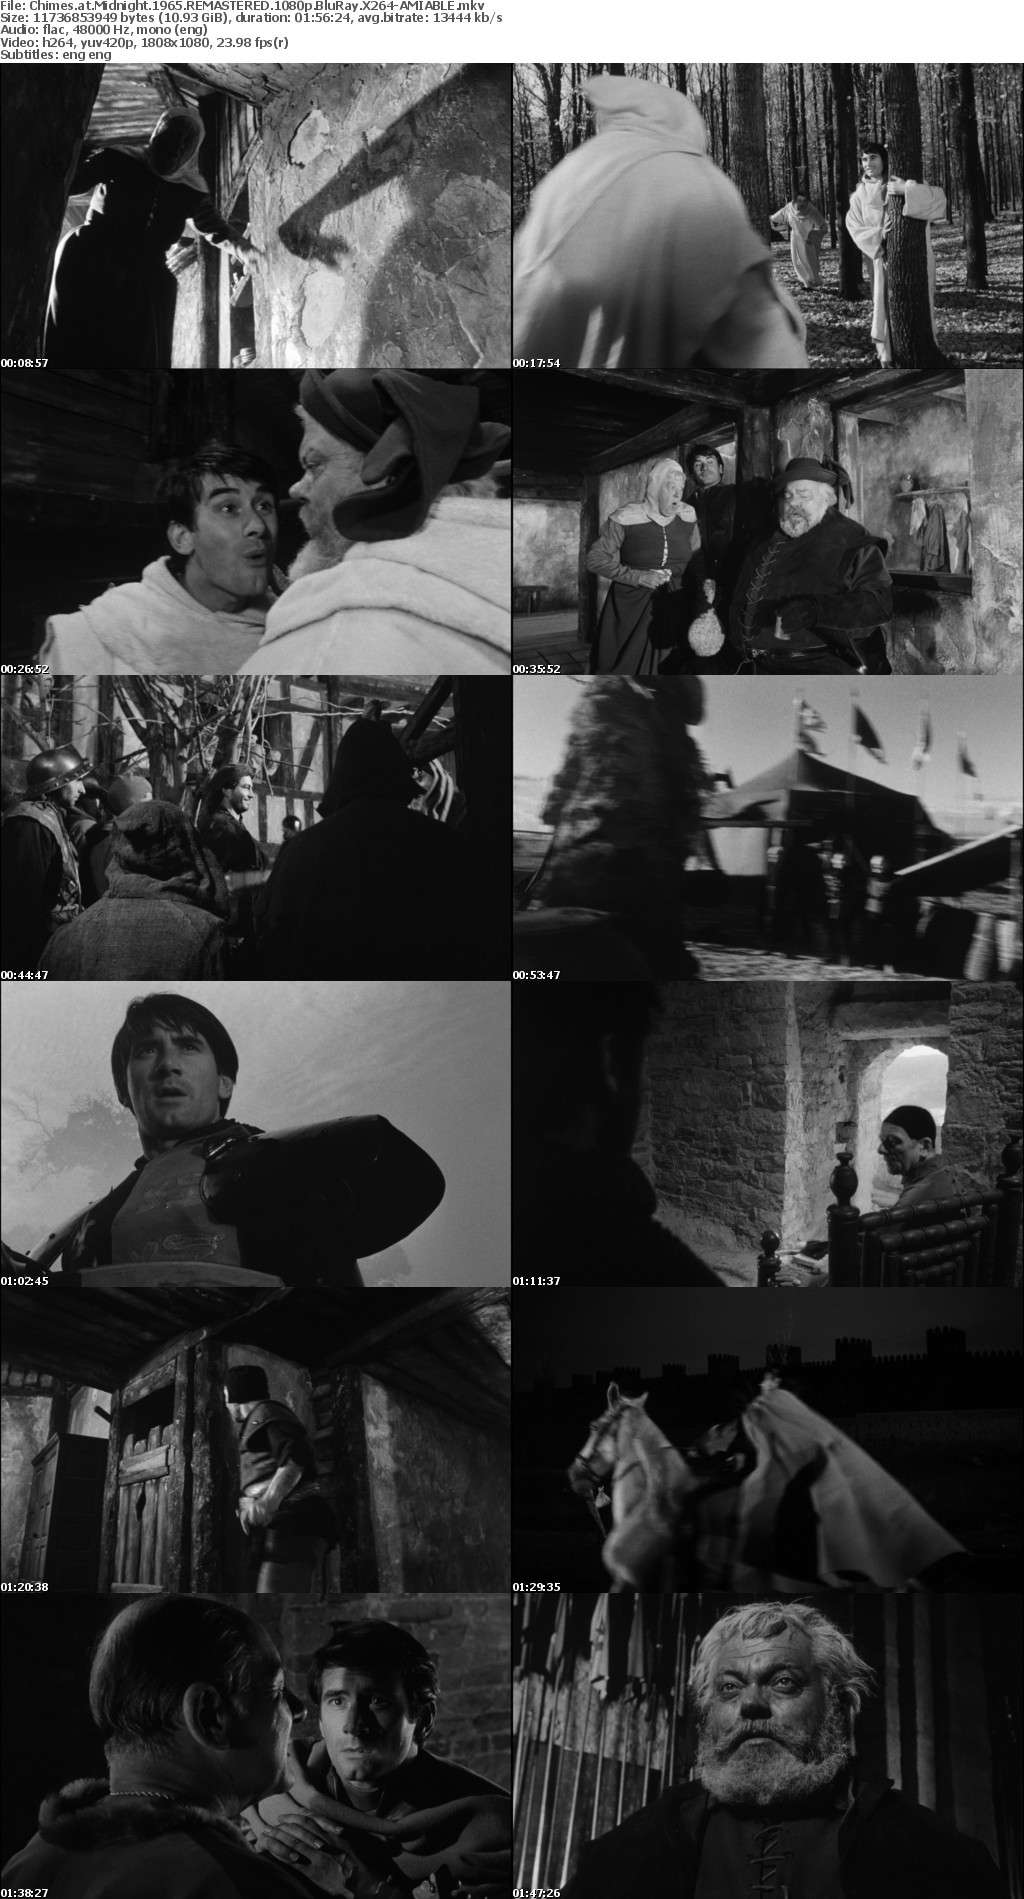 Chimes at Midnight 1965 REMASTERED 1080p BluRay X264-AMIABLE